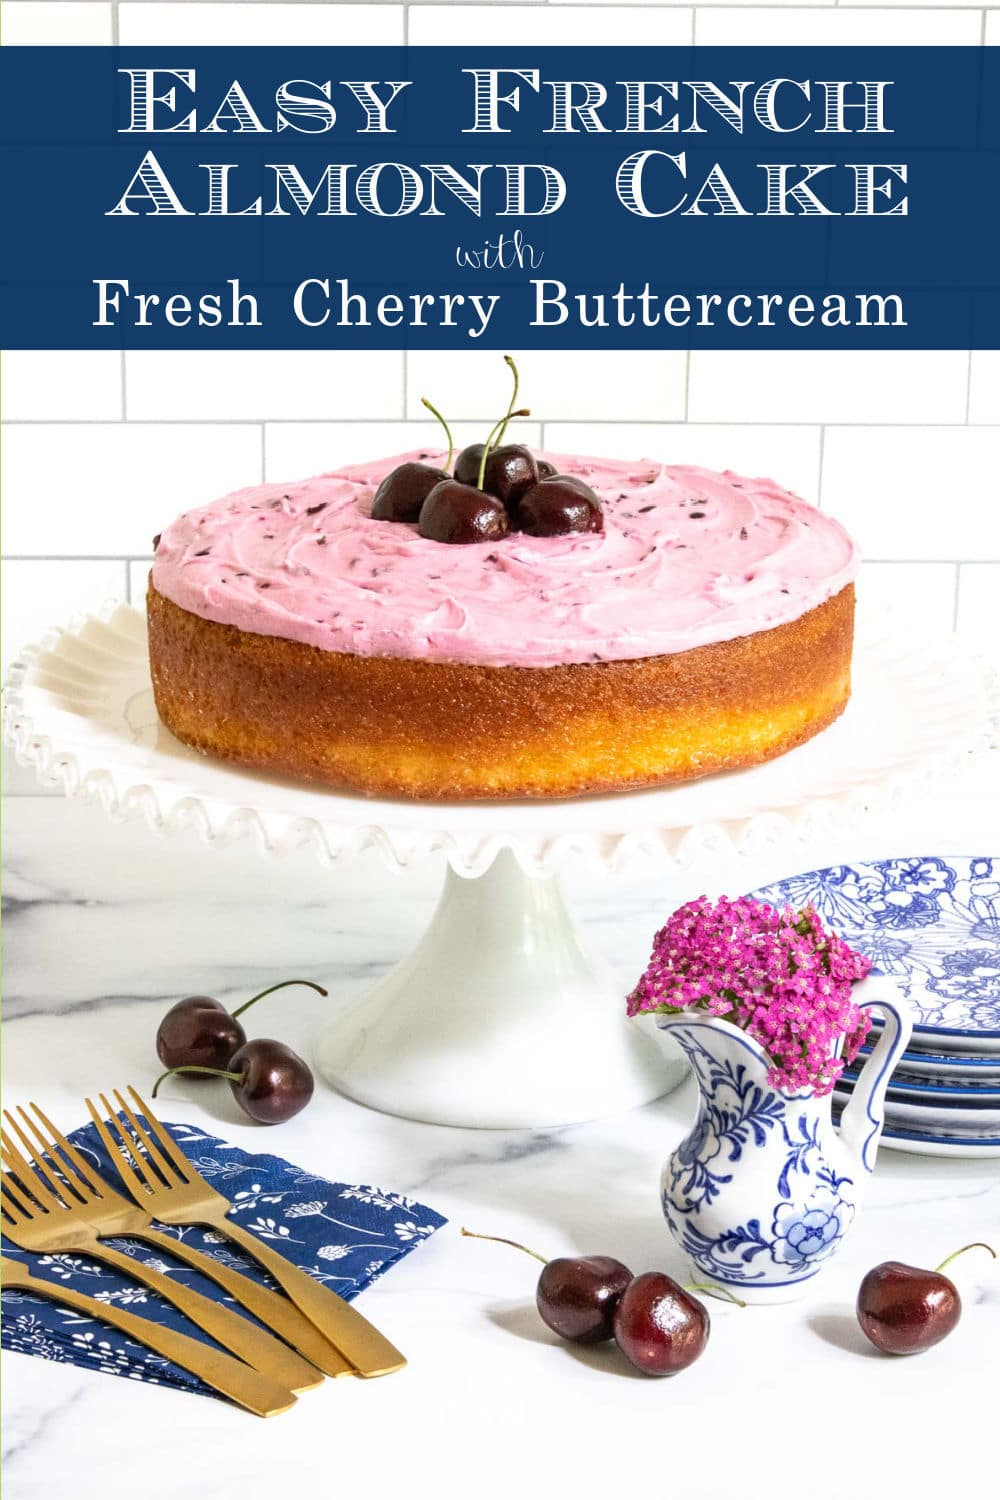 Easy French Almond Cake with Fresh Cherry Buttercream